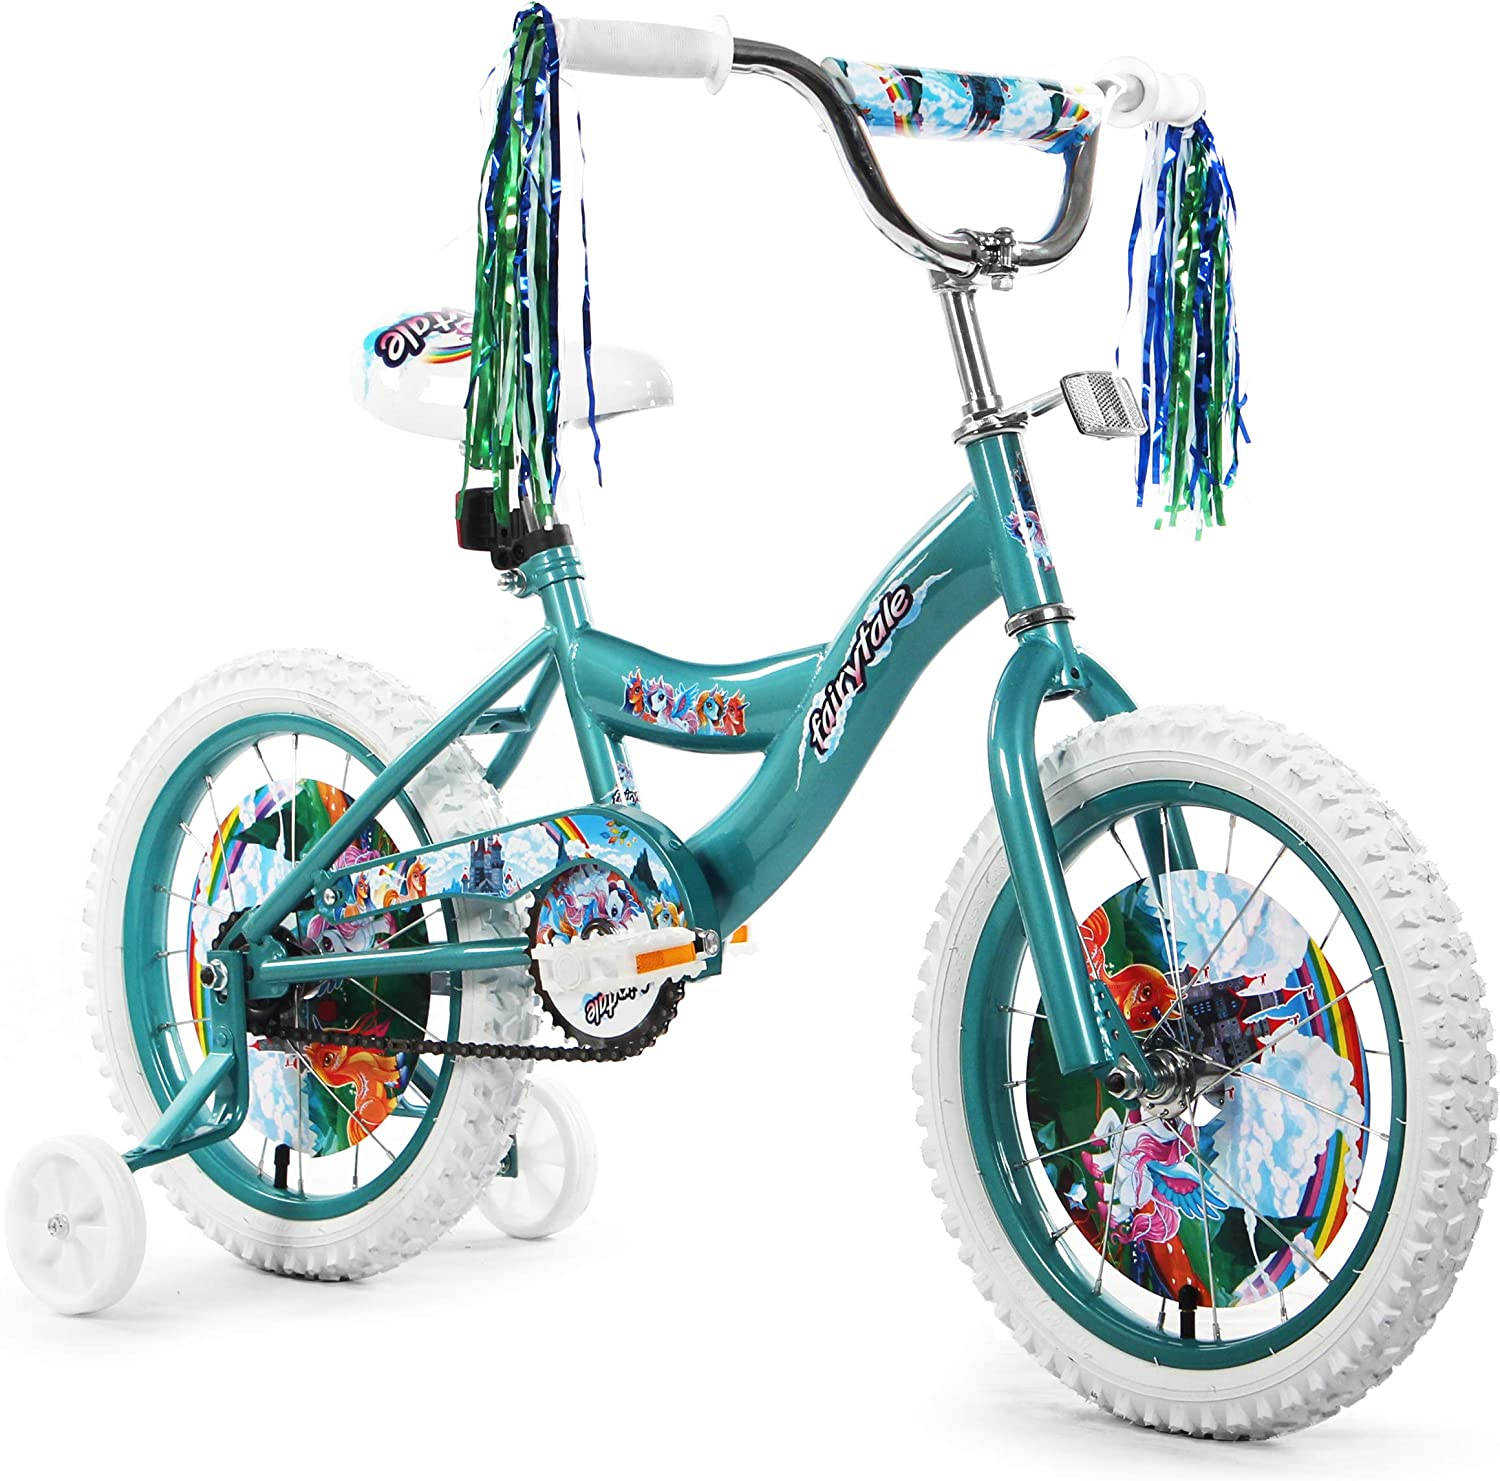 16 /& 20 Wheels ISD Kids Bicycles Dinosaur /& Unicorn Bike with Training Wheels 12 Multiple Colors